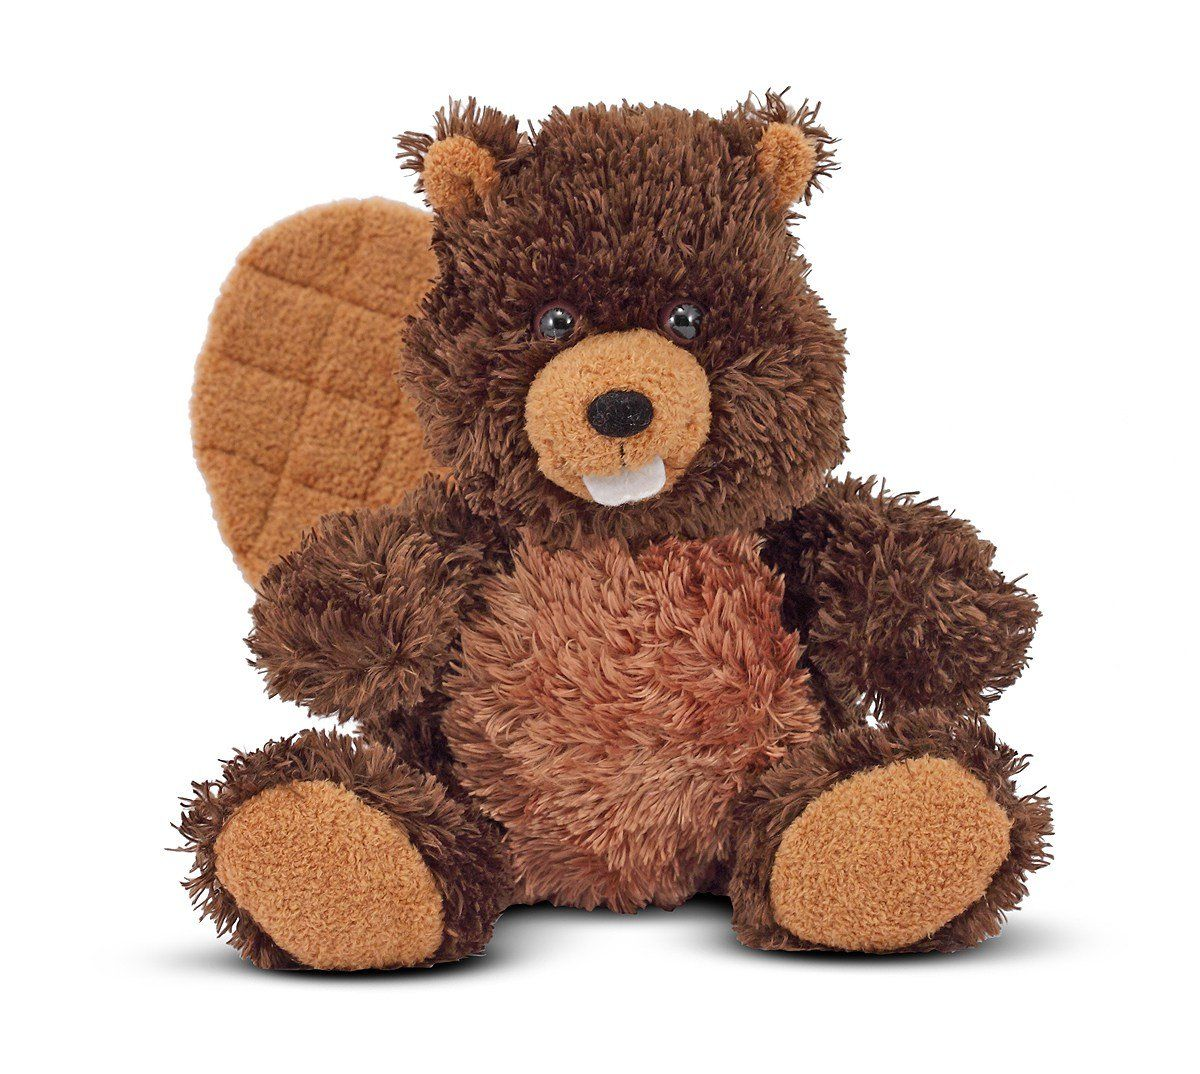 Chopper Beaver Stuffed Animal Teddy bear stuffed animal